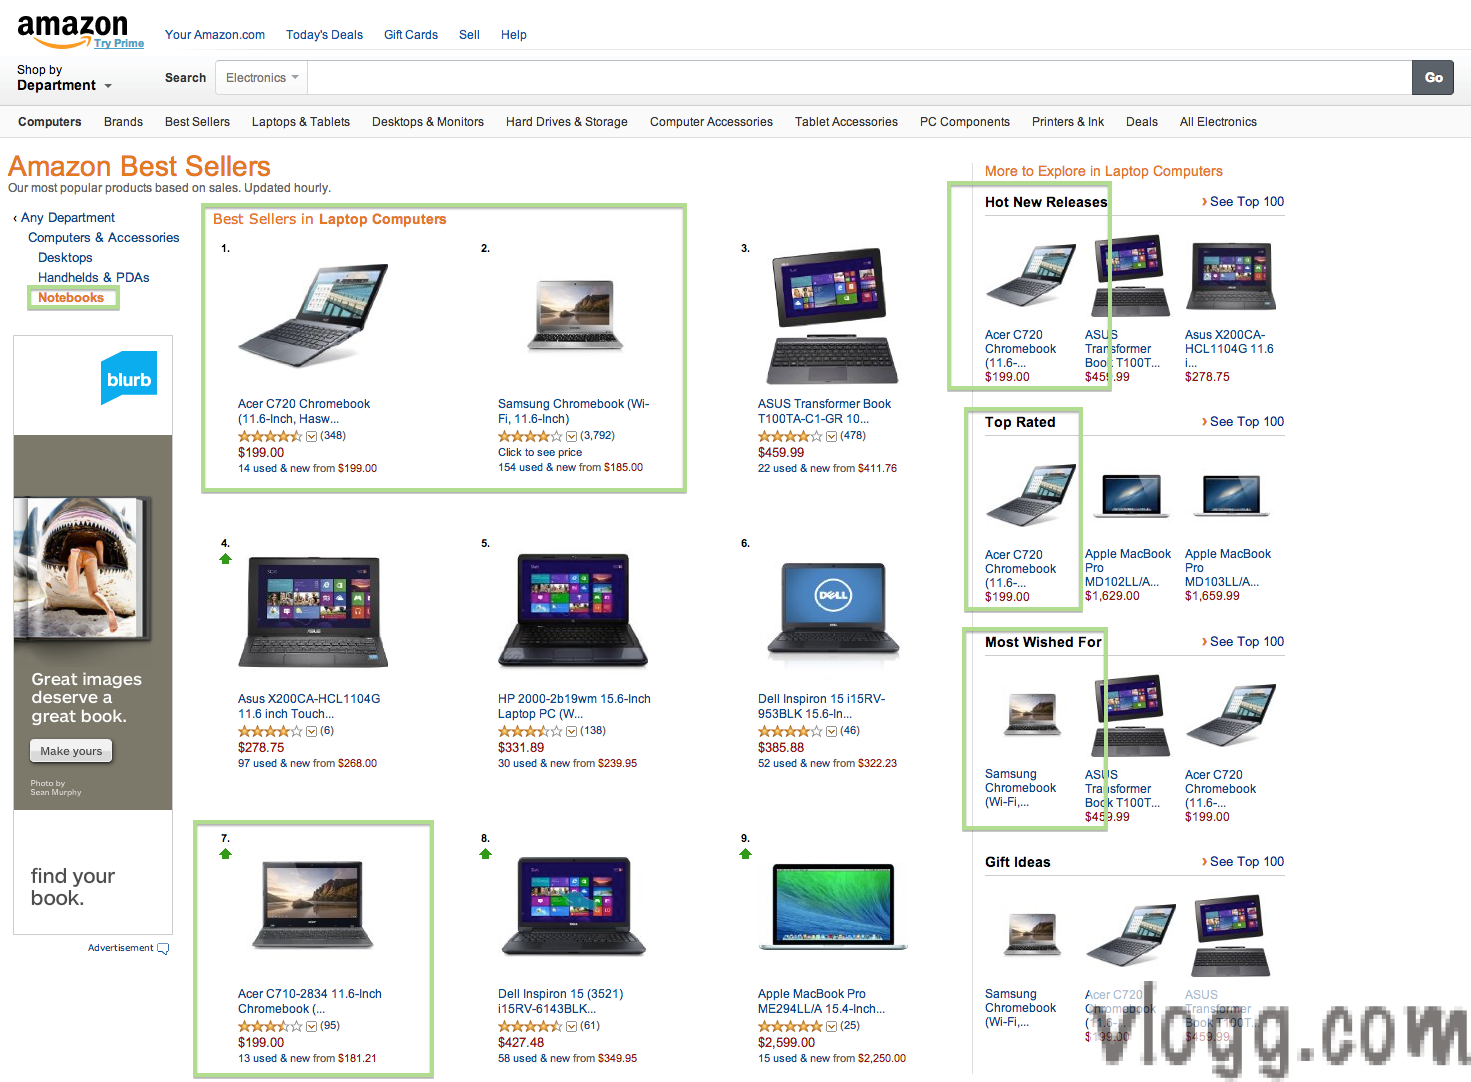 Chromebook Ranking #1 under Amazon Best Sellers under Notebook Category [Images: vlogg.com]